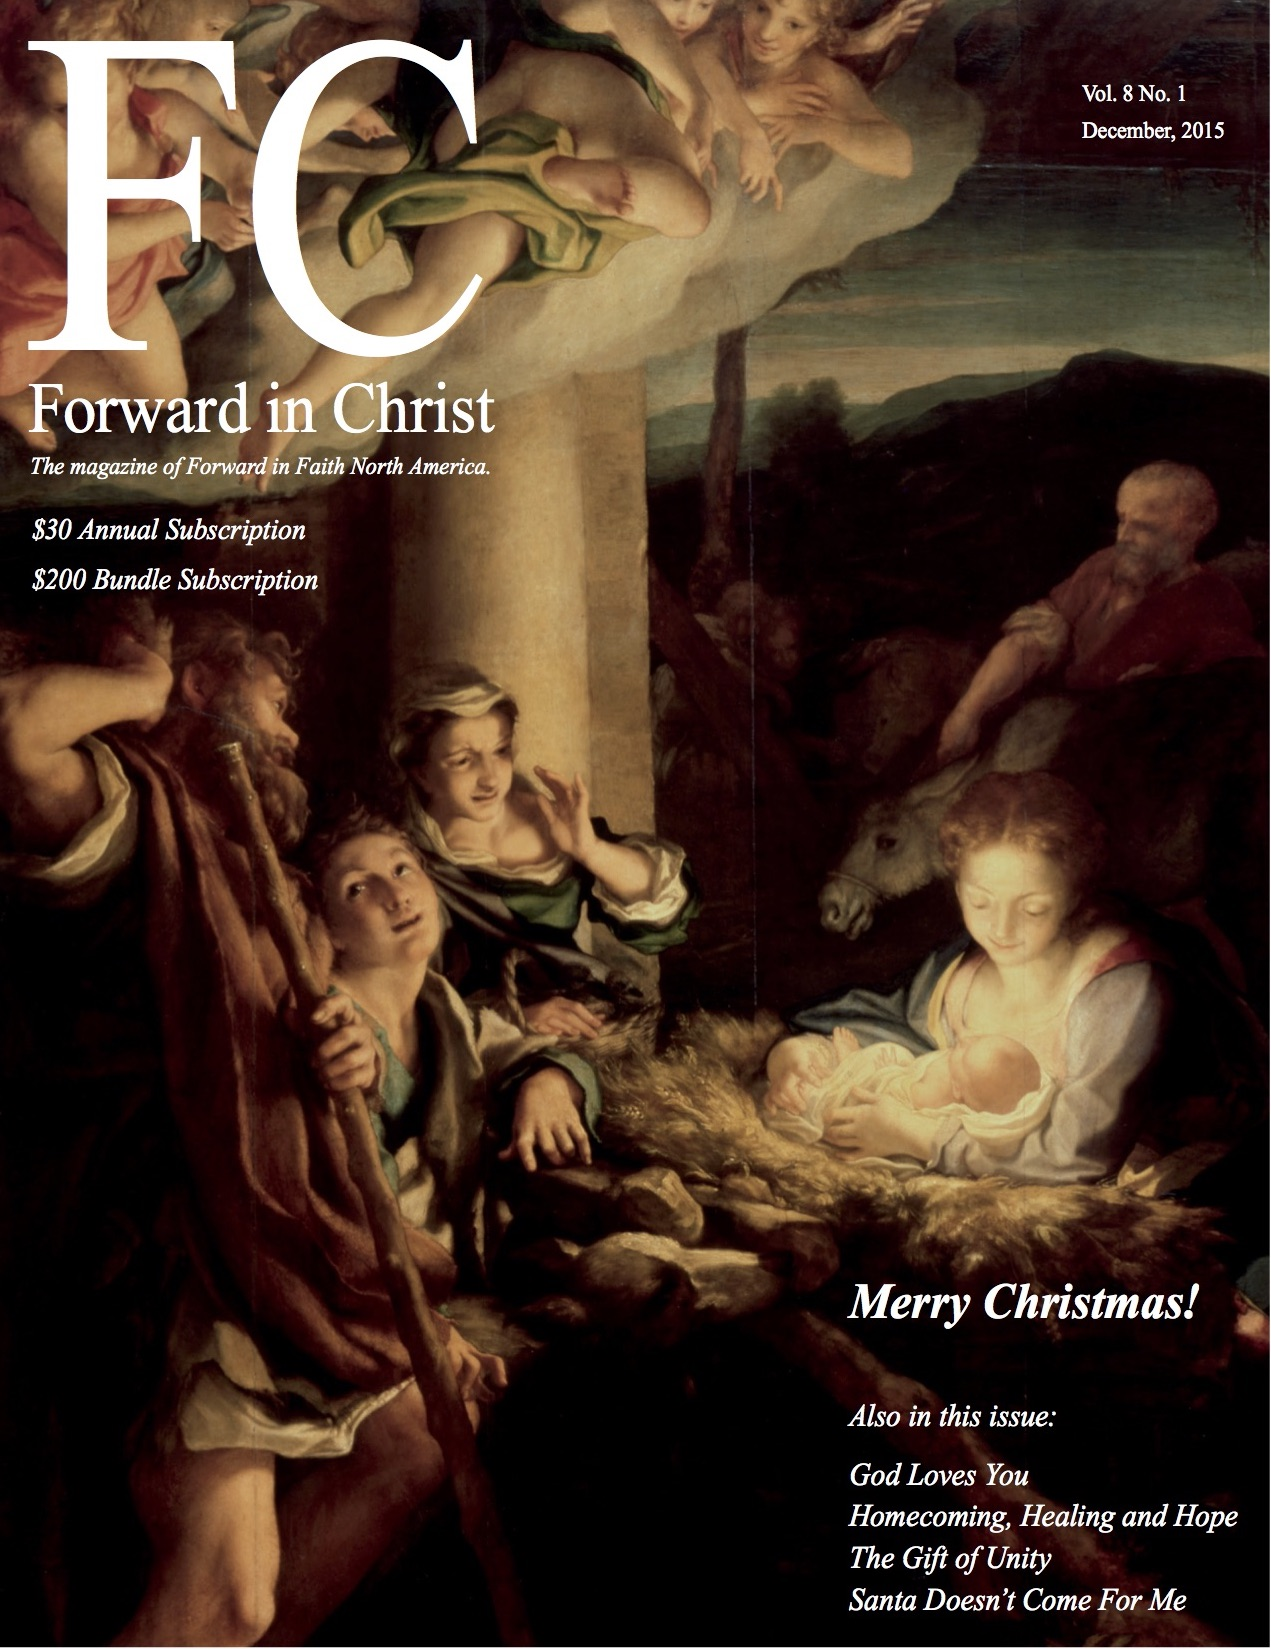 Forward in Christ December 2015